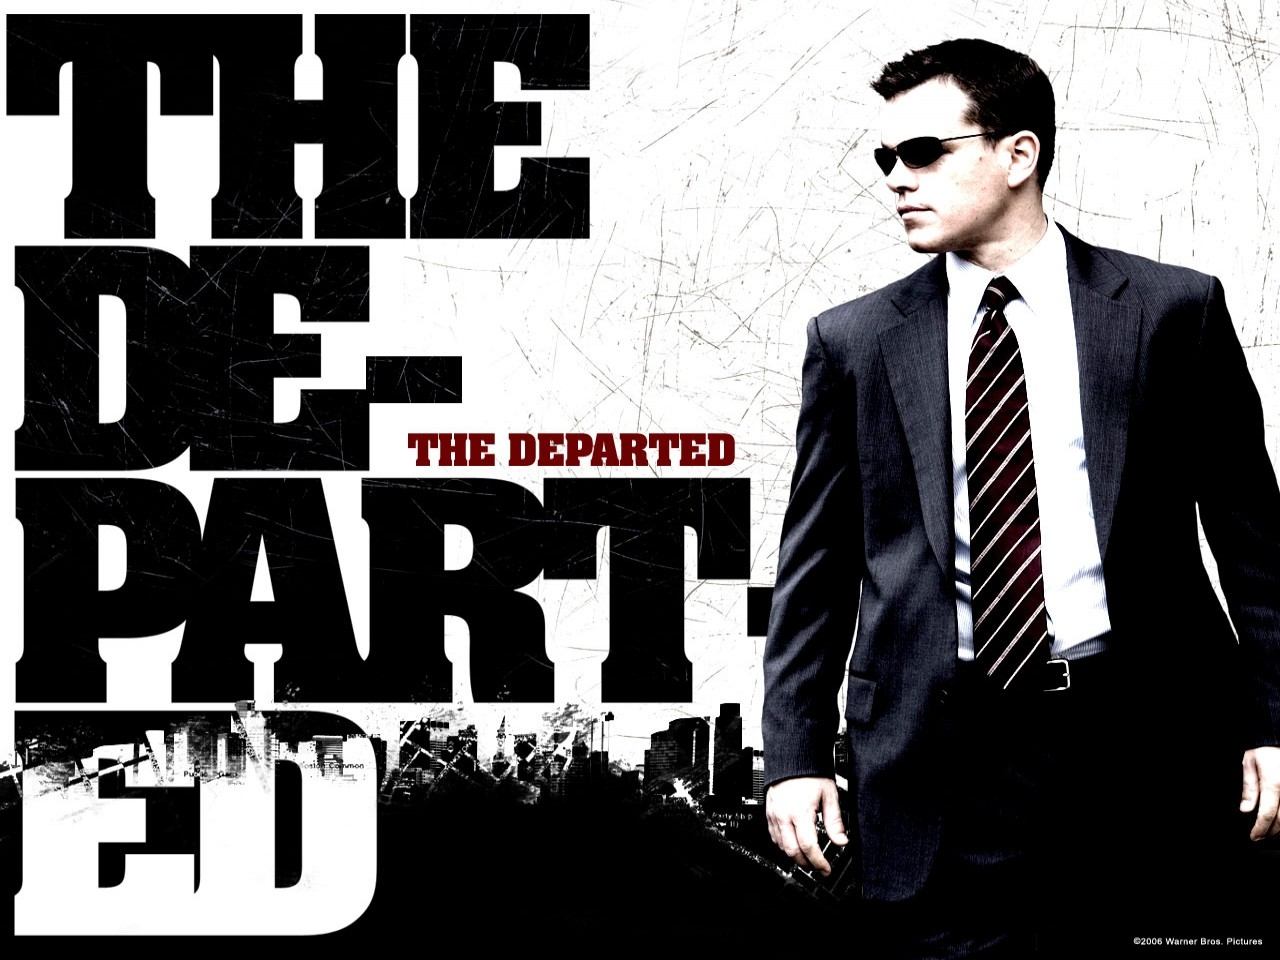 Wallpaper del film The Departed - Il bene e il male con Matt Damon